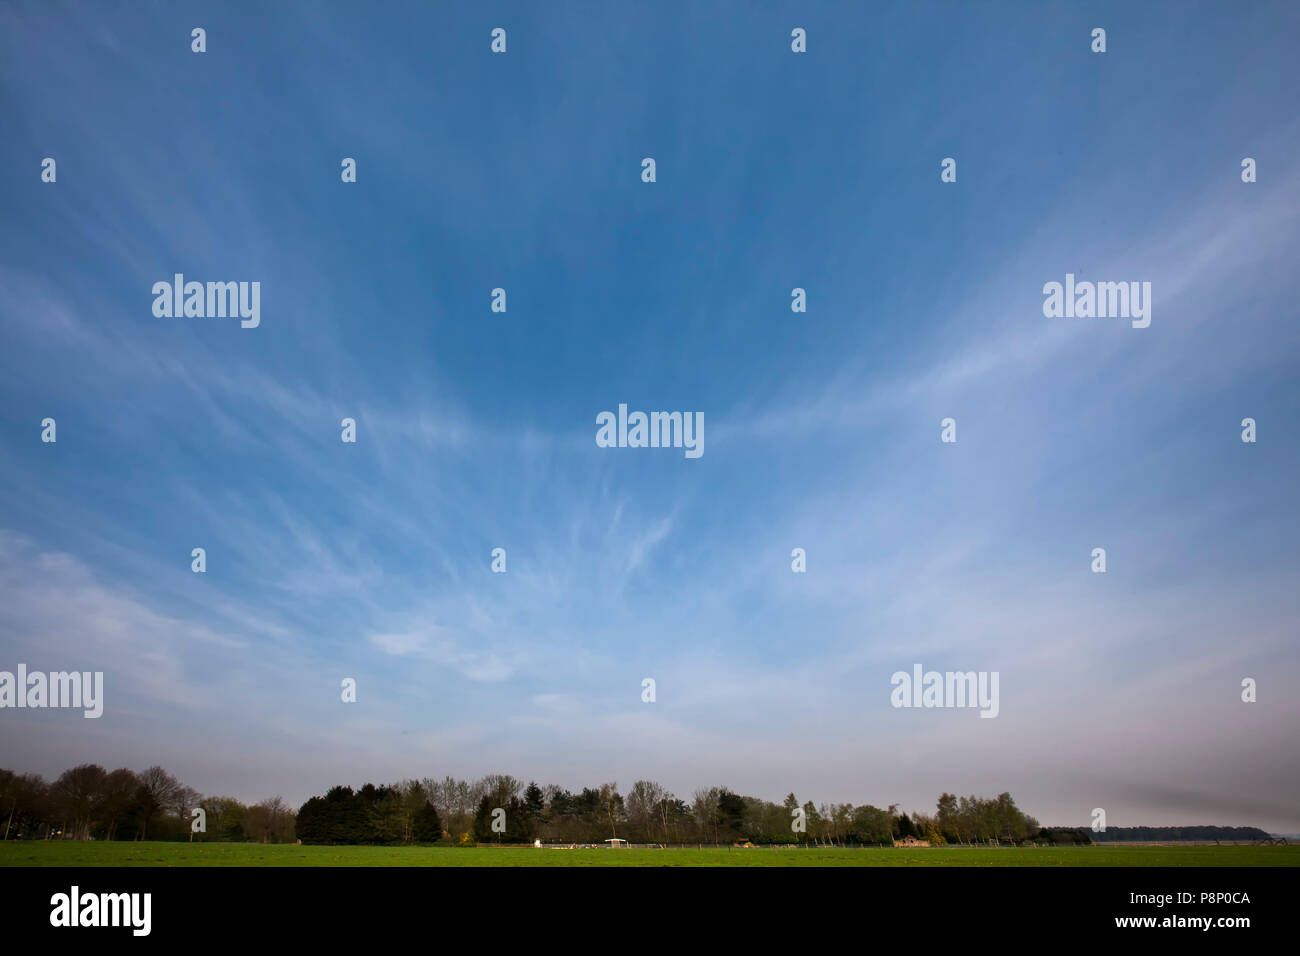 Parhelic circle in a blue sky (wide angle picture) - Stock Image